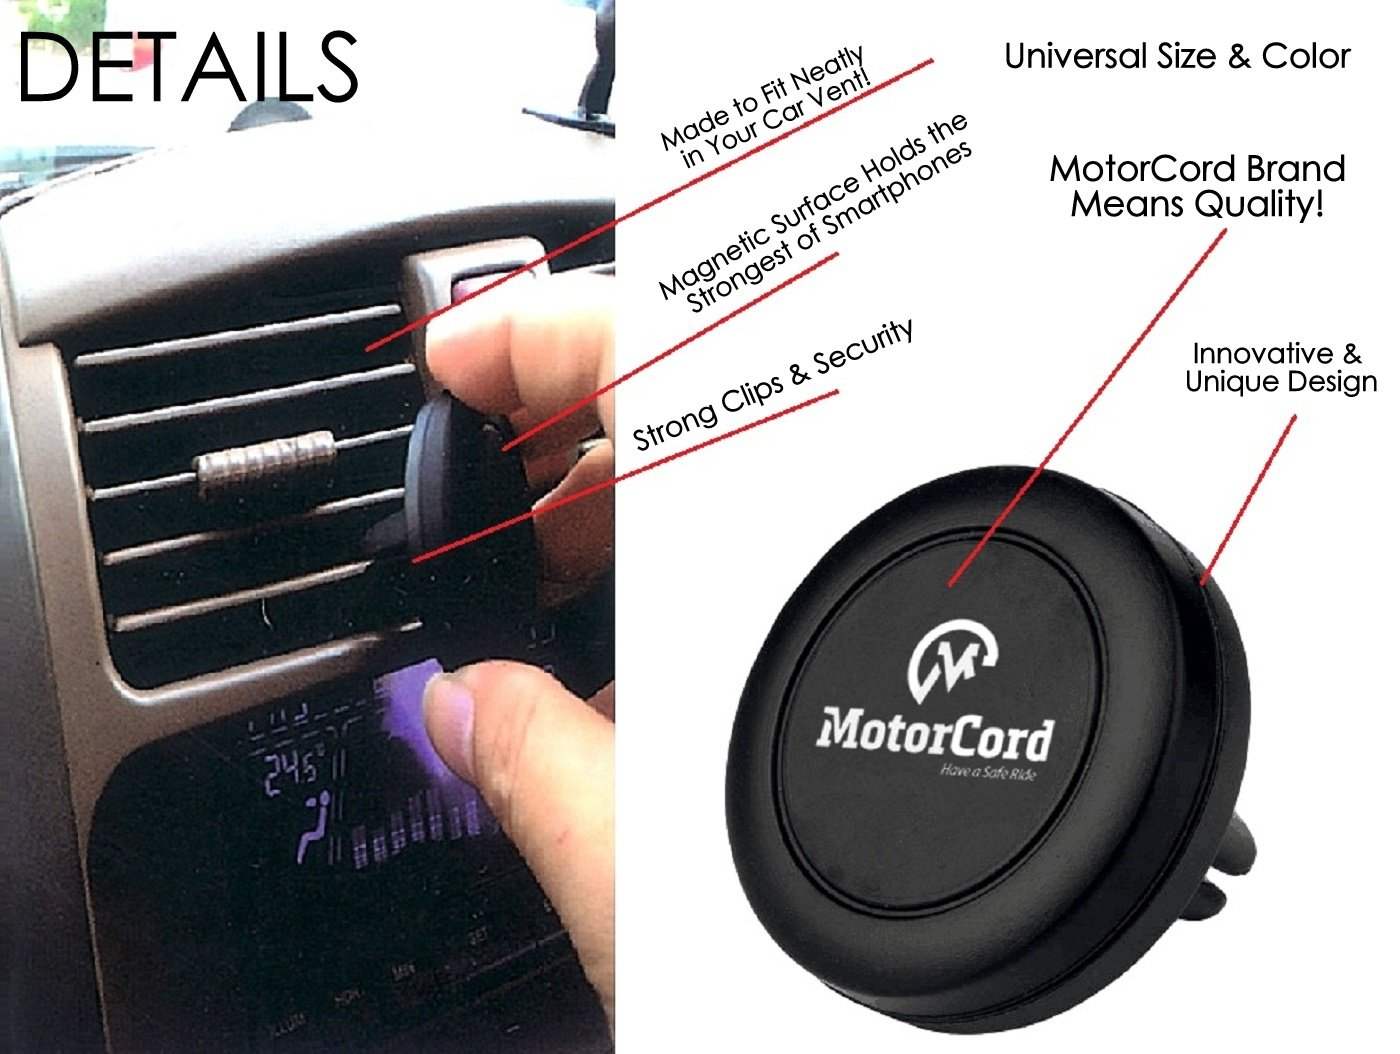 720043143273 MotorCord Car Mount Magnet One-Touch Air Vent Phone Holder Universal Magnetic Cell Phone Holder Air Vent Magnetic Car Mount Phone Holder,Ultra-Compact Car Mount for Smartphones /& Mini Tablets Black